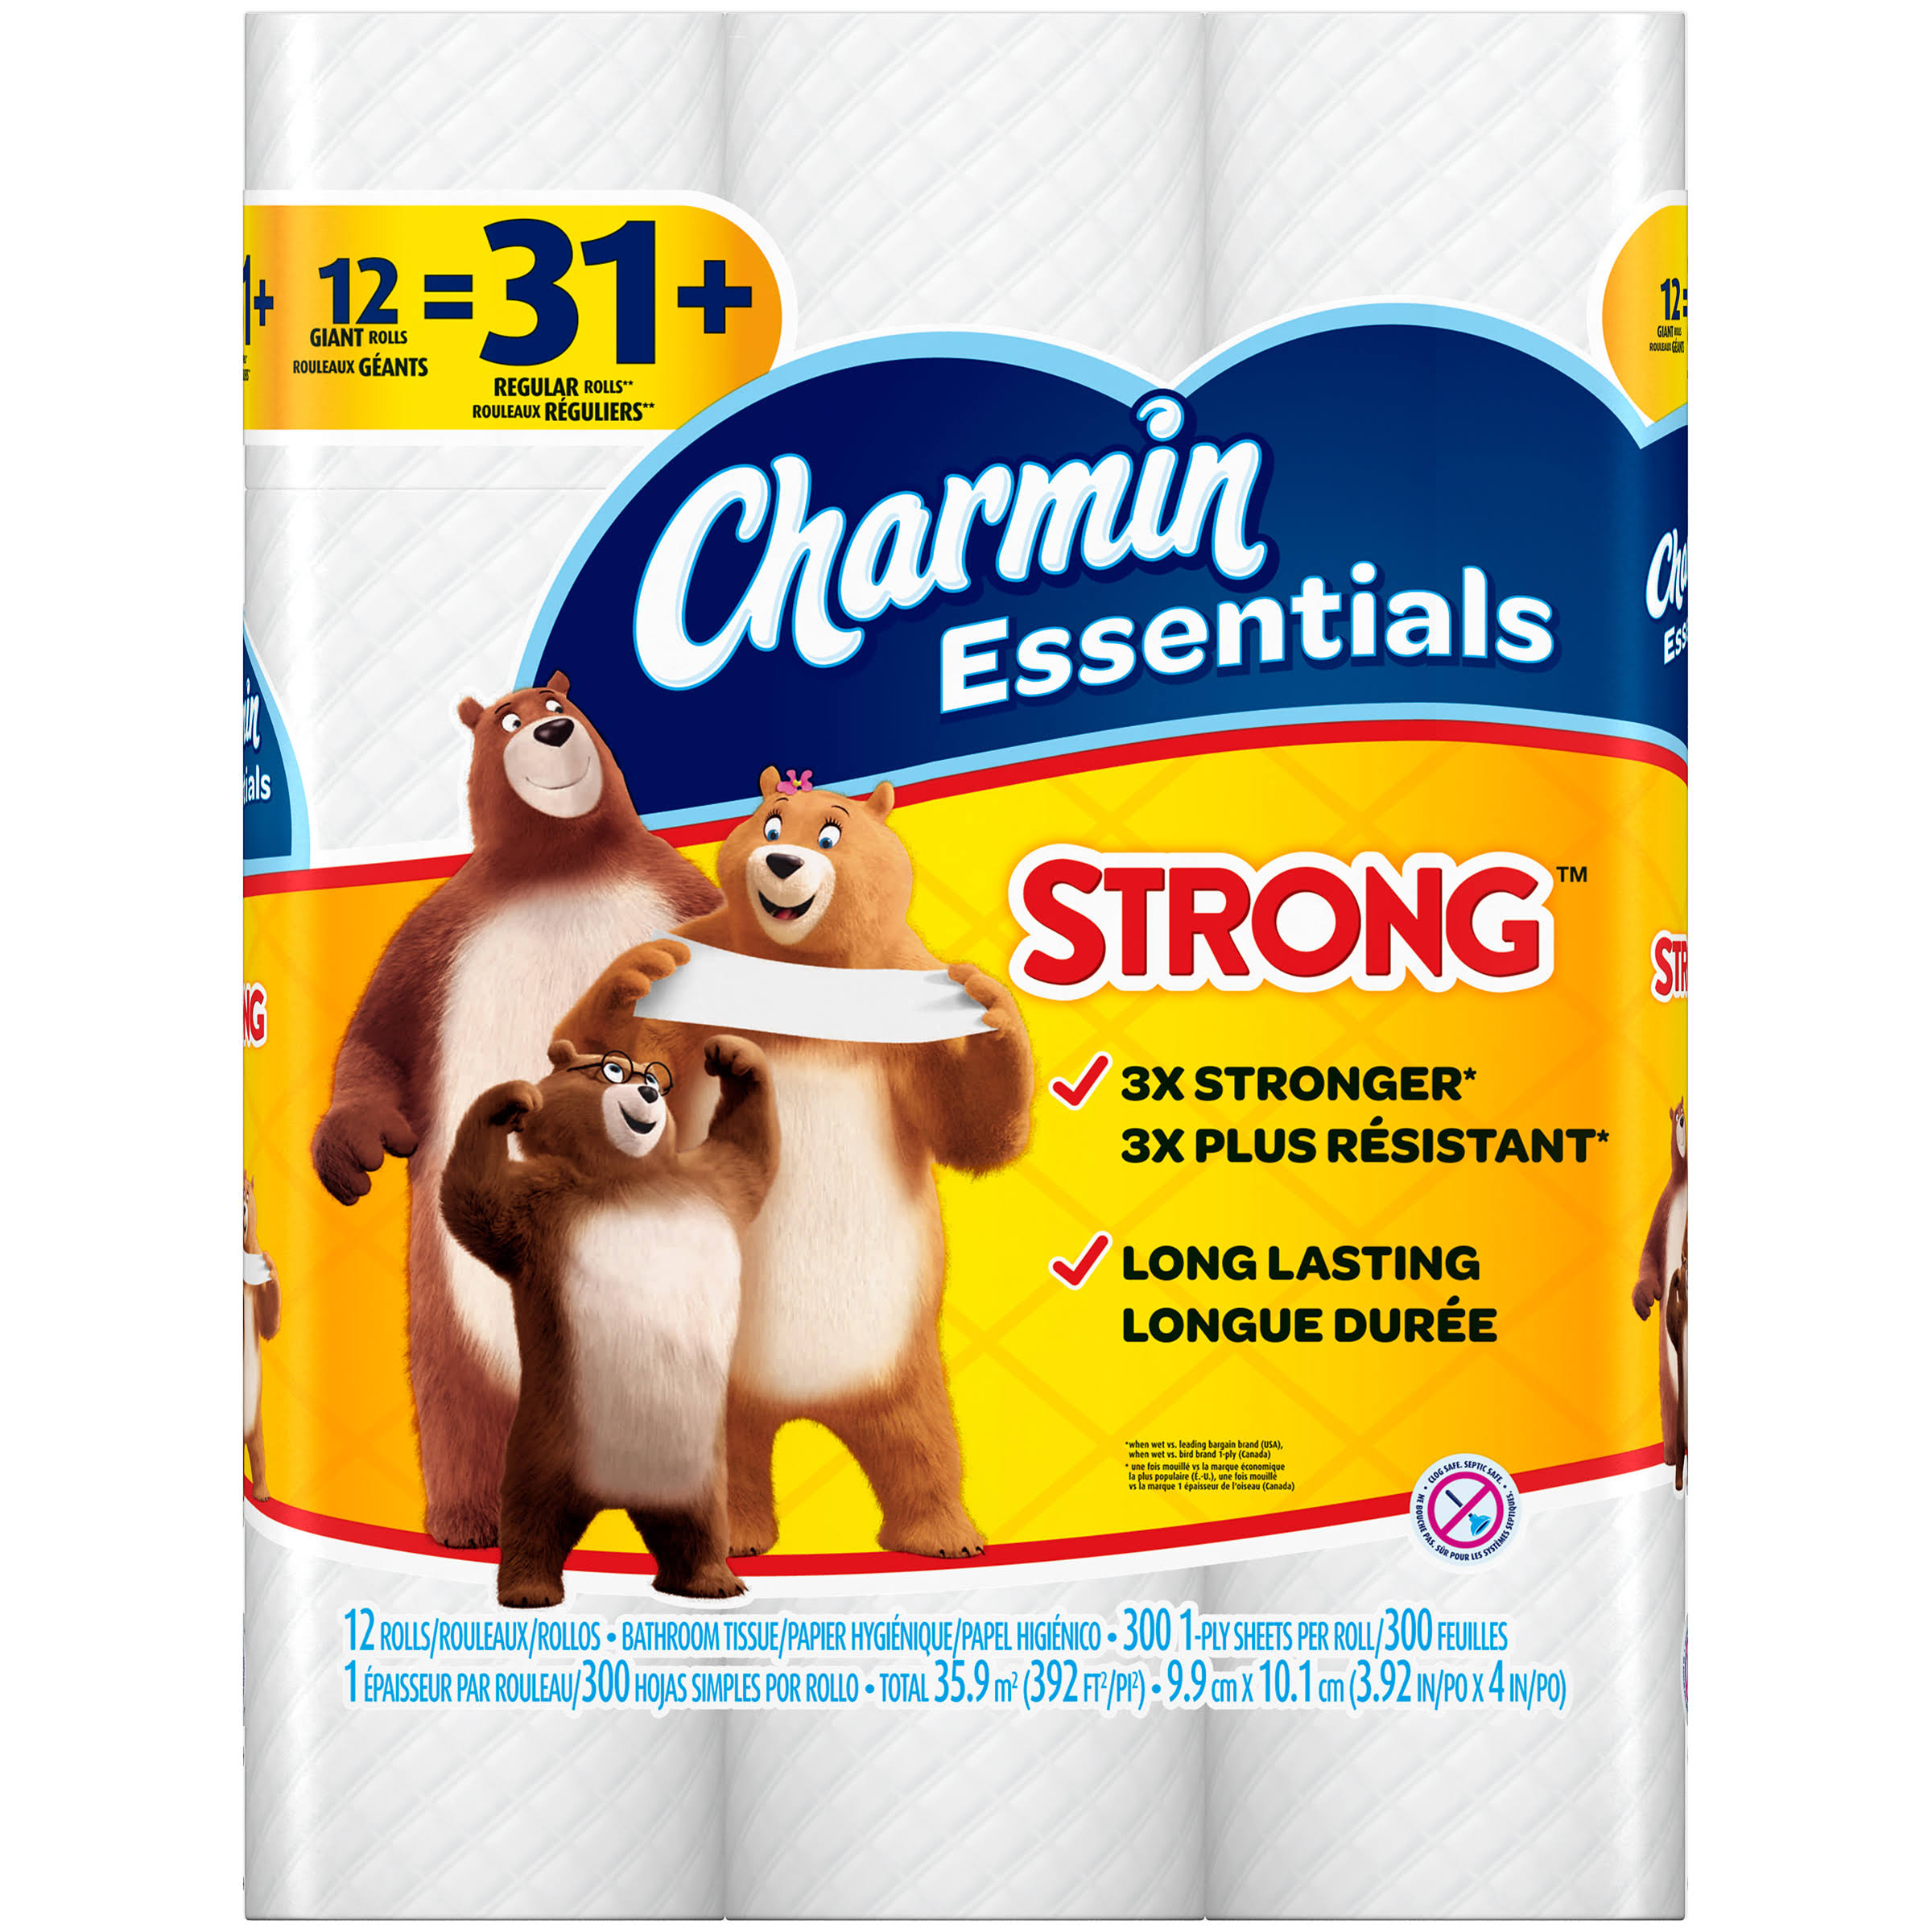 Charmin Essentials Strong Toilet Paper - 12 Giant Rolls